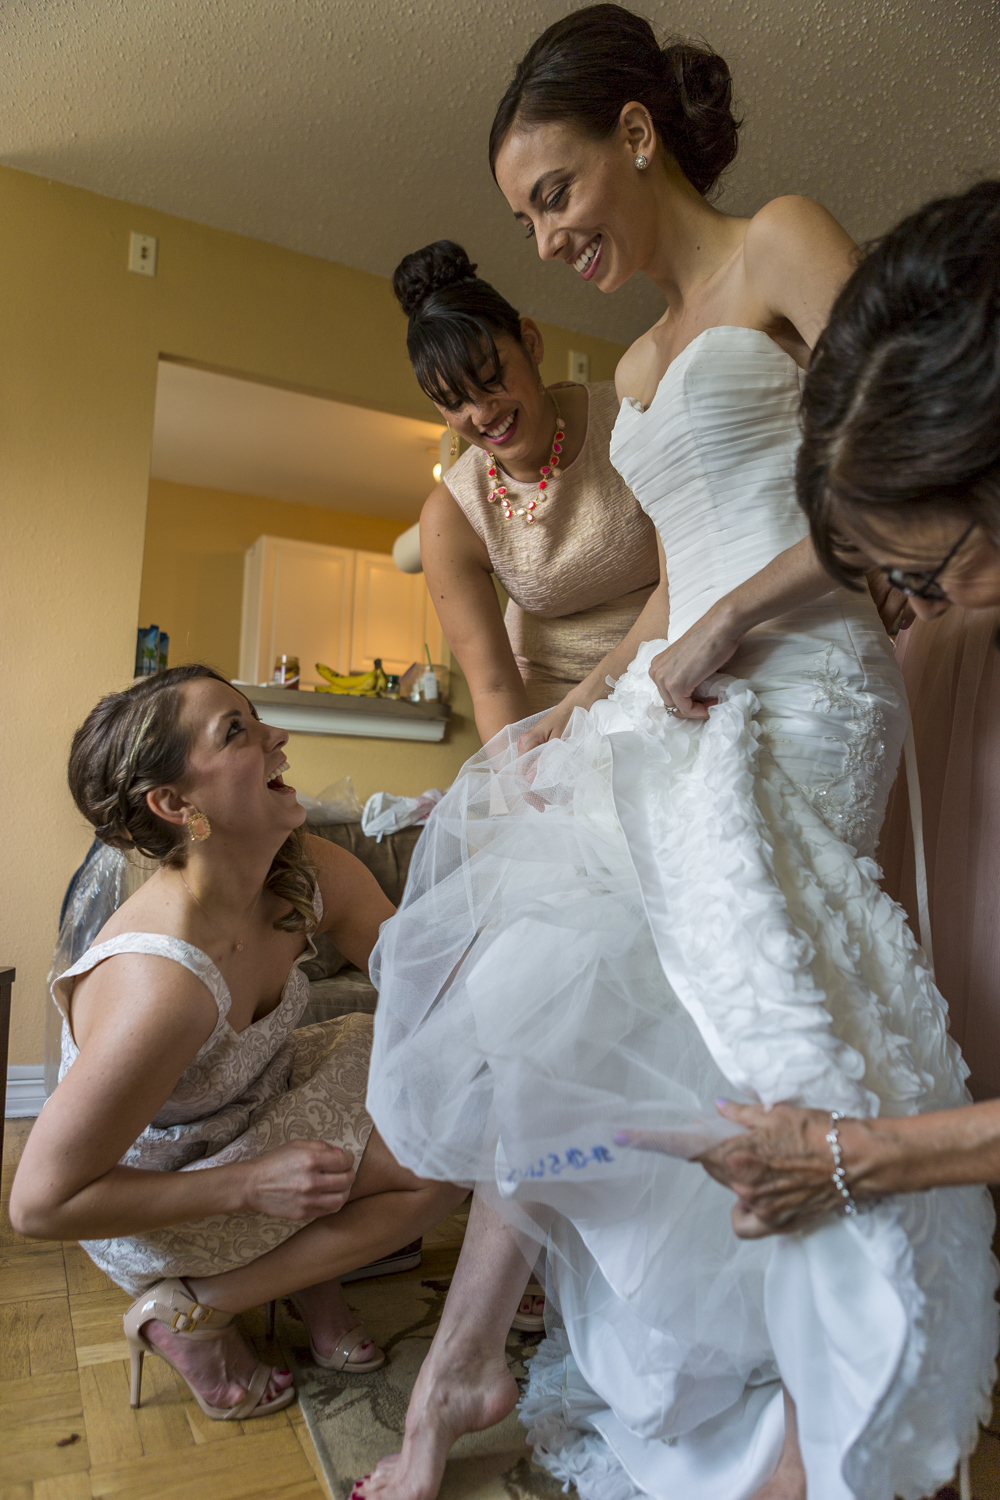 motifhotel_seattle_tacoma_pnw_photographer_wedding_photographer_weddingphotography_modernweddings_beautifulbride_seattlebride_bellevuebride_pnwbride_washington_hawaiianweddings-17.jpg